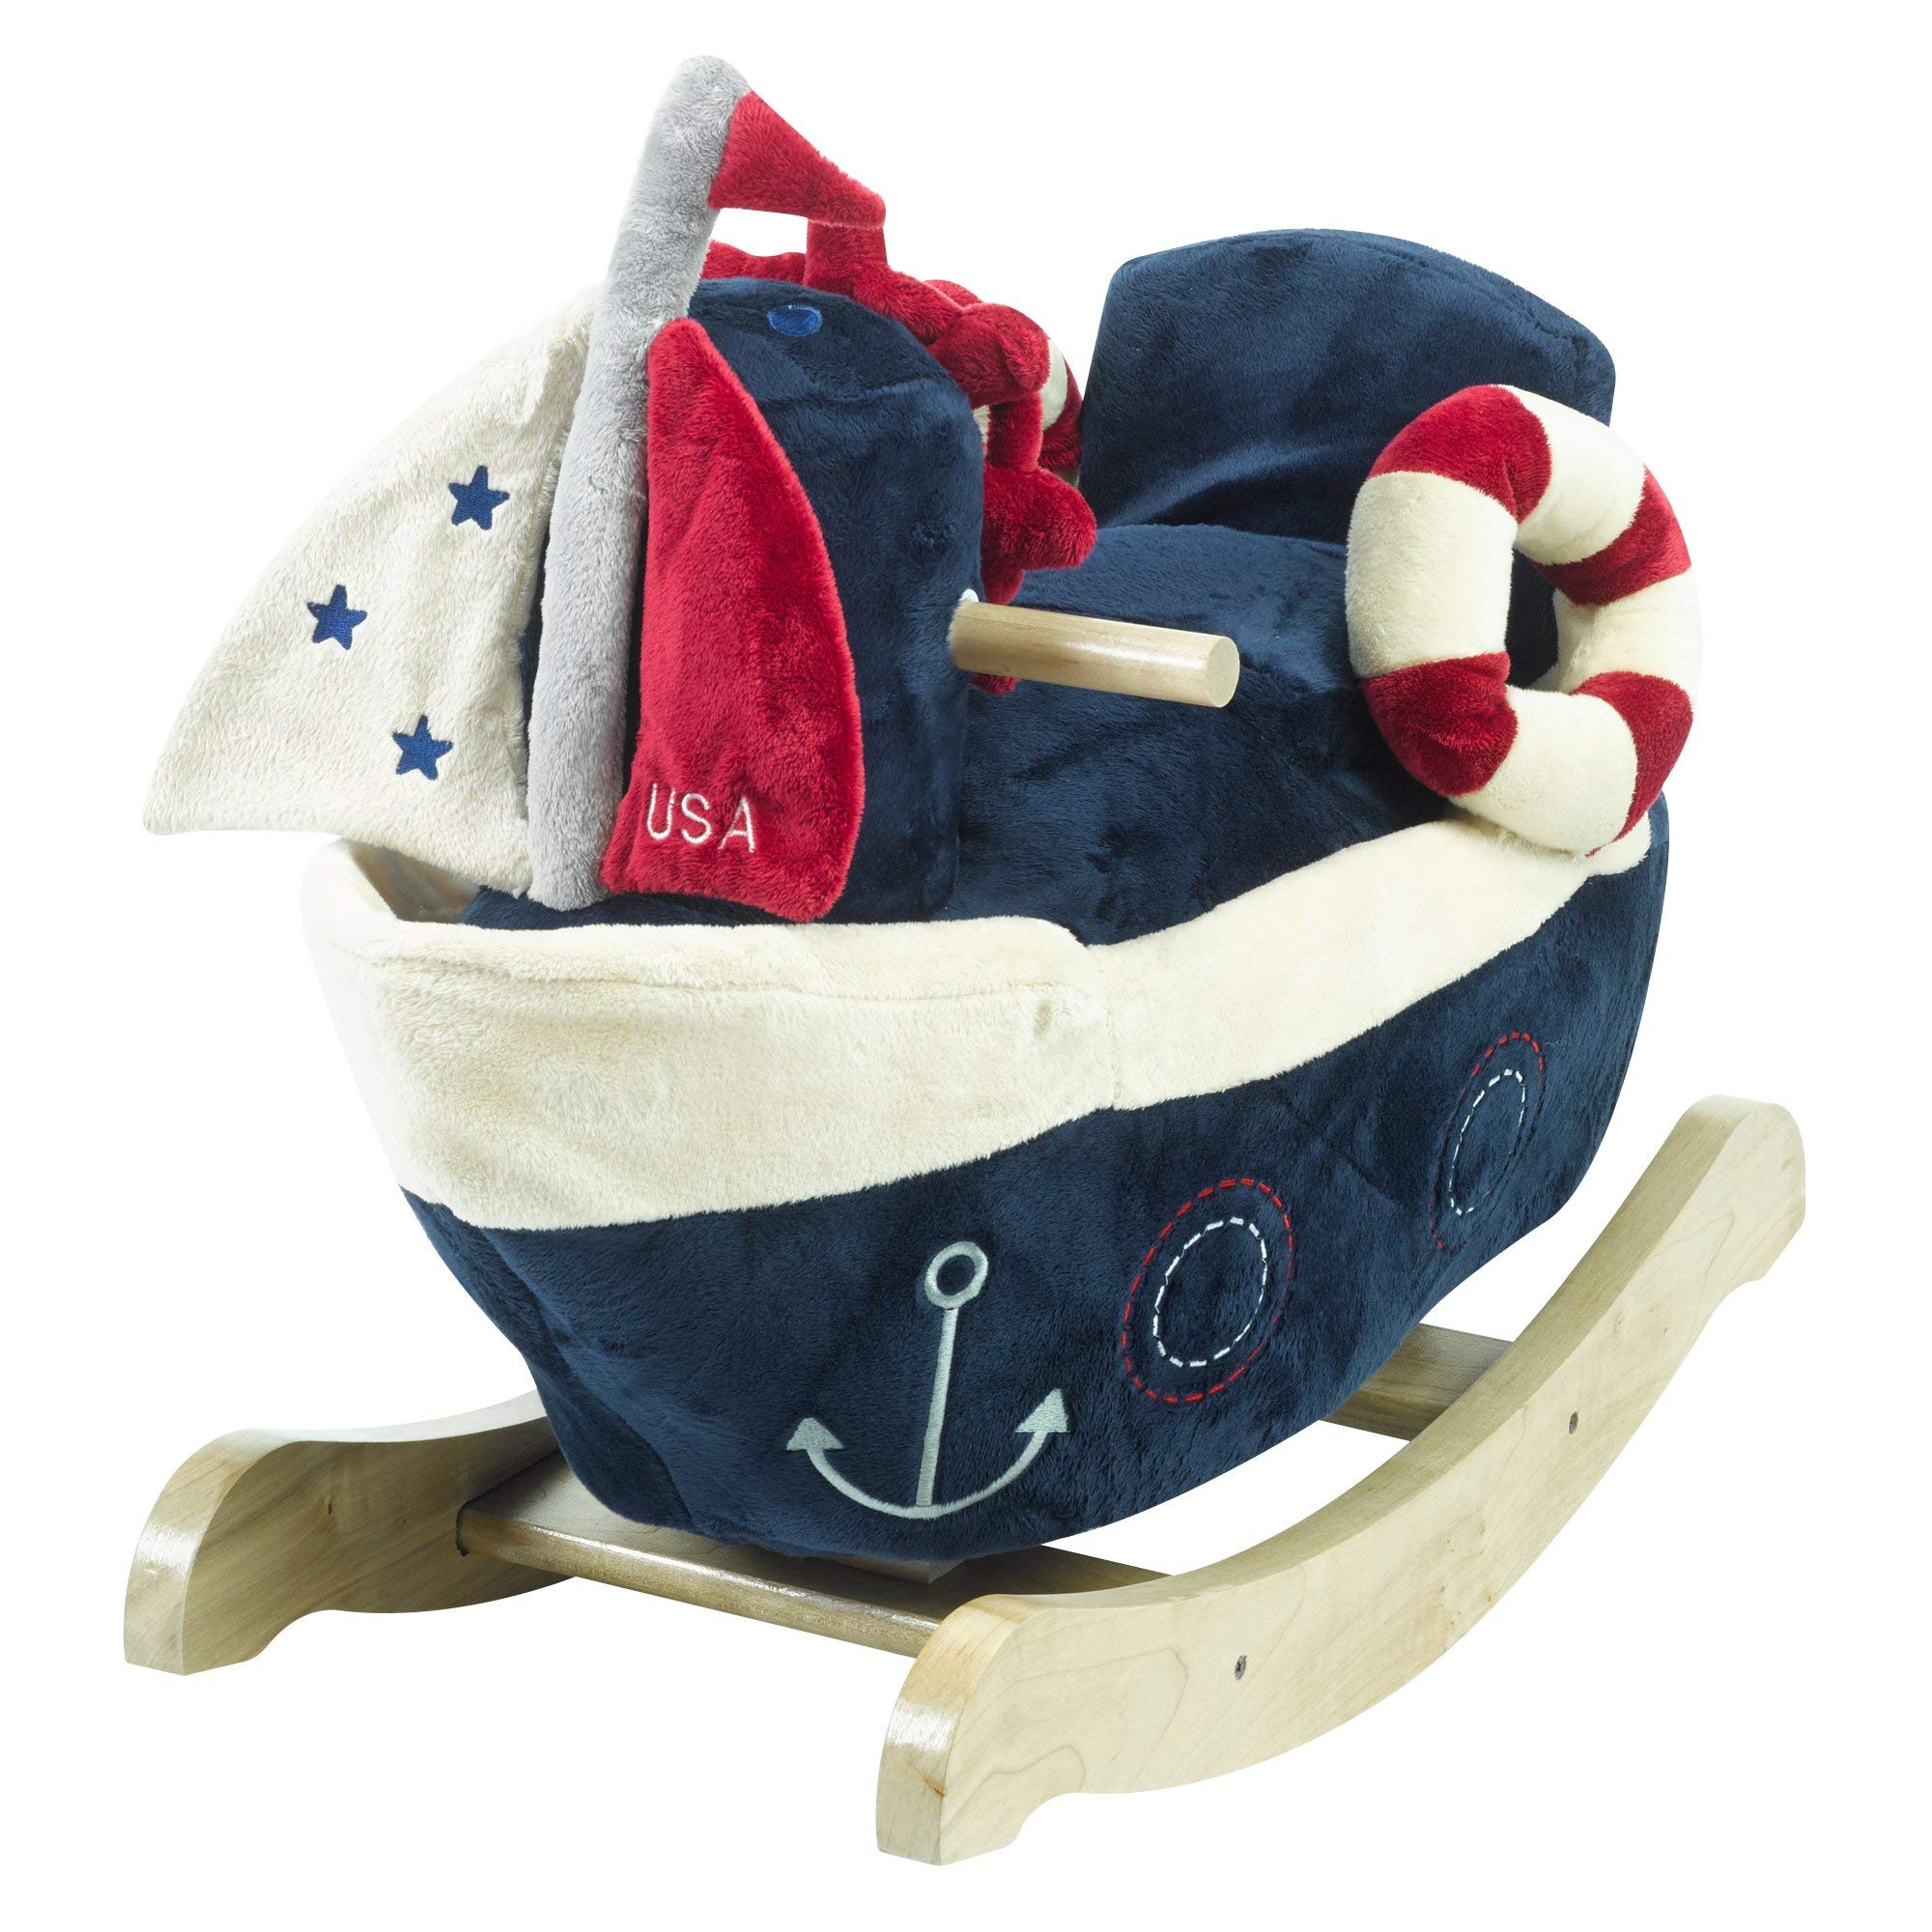 America The Sailboat Play and Rock | Horse Plush Butterfly Baby Toy with Wooden Rocking Chiar Horse/Kid Rocking Toy/Baby Rocking Horse/Rocker/Animal Ride